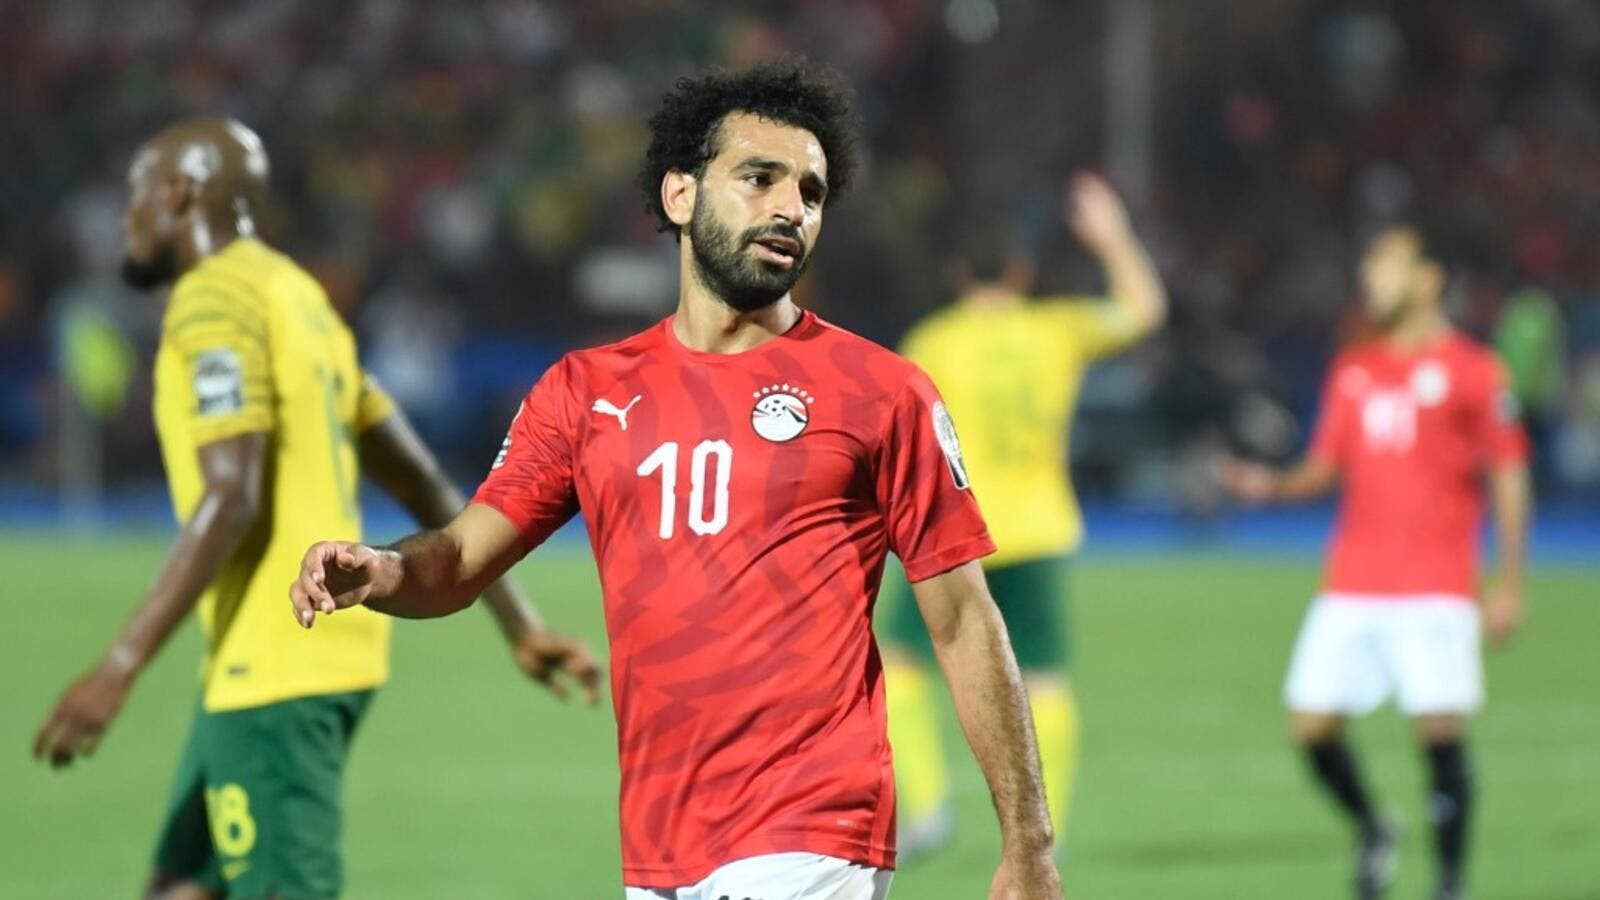 Liverpool ace Salah doesn't like VAR: But I'll get more penalties!